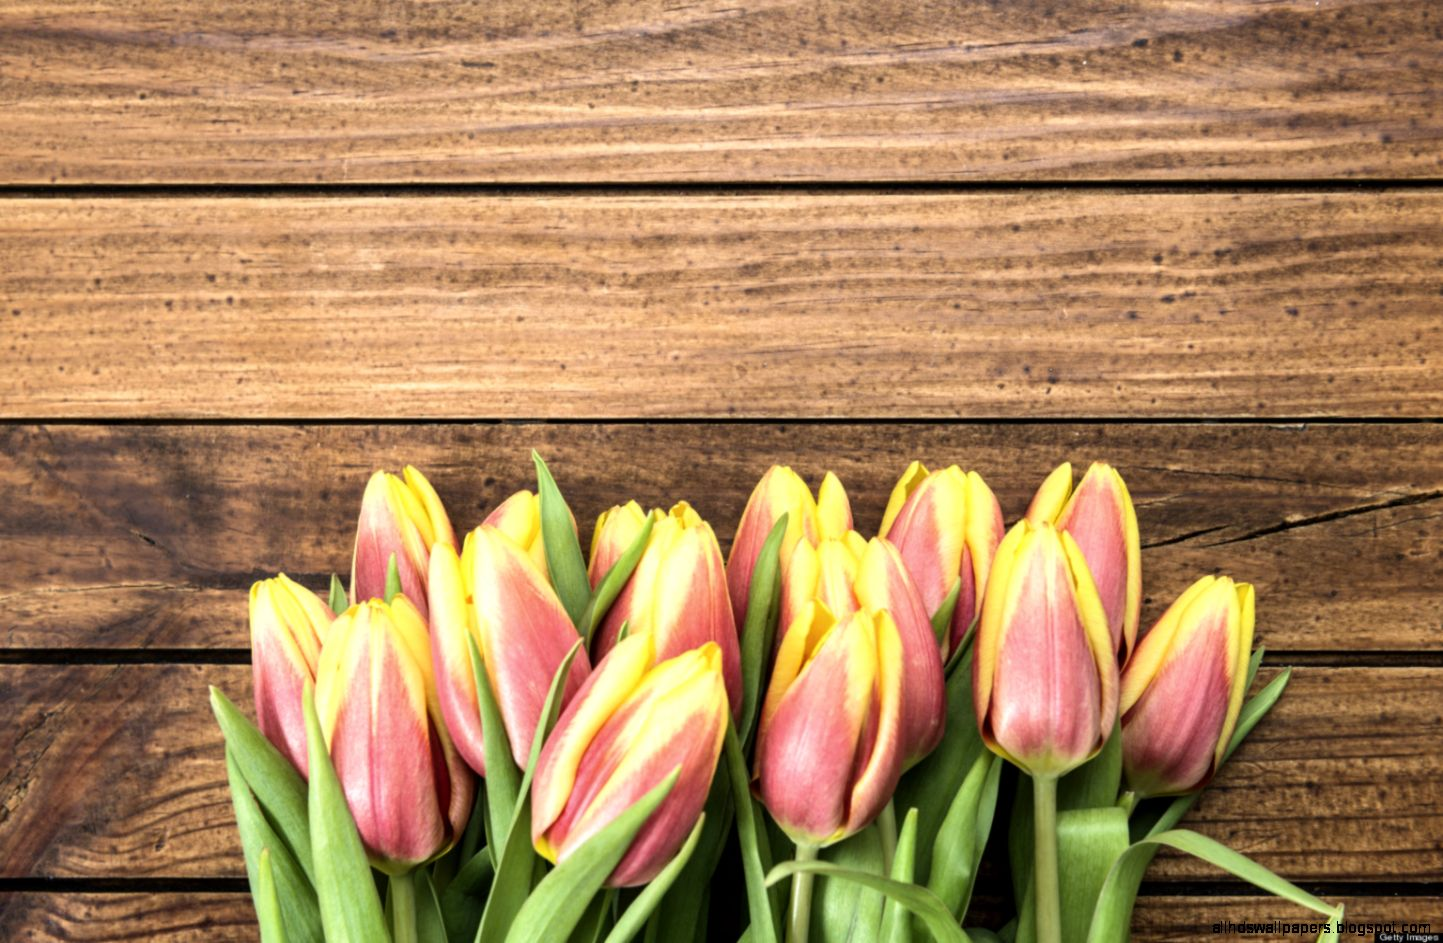 Spring Health Benefits 6 Reasons To Love The Season